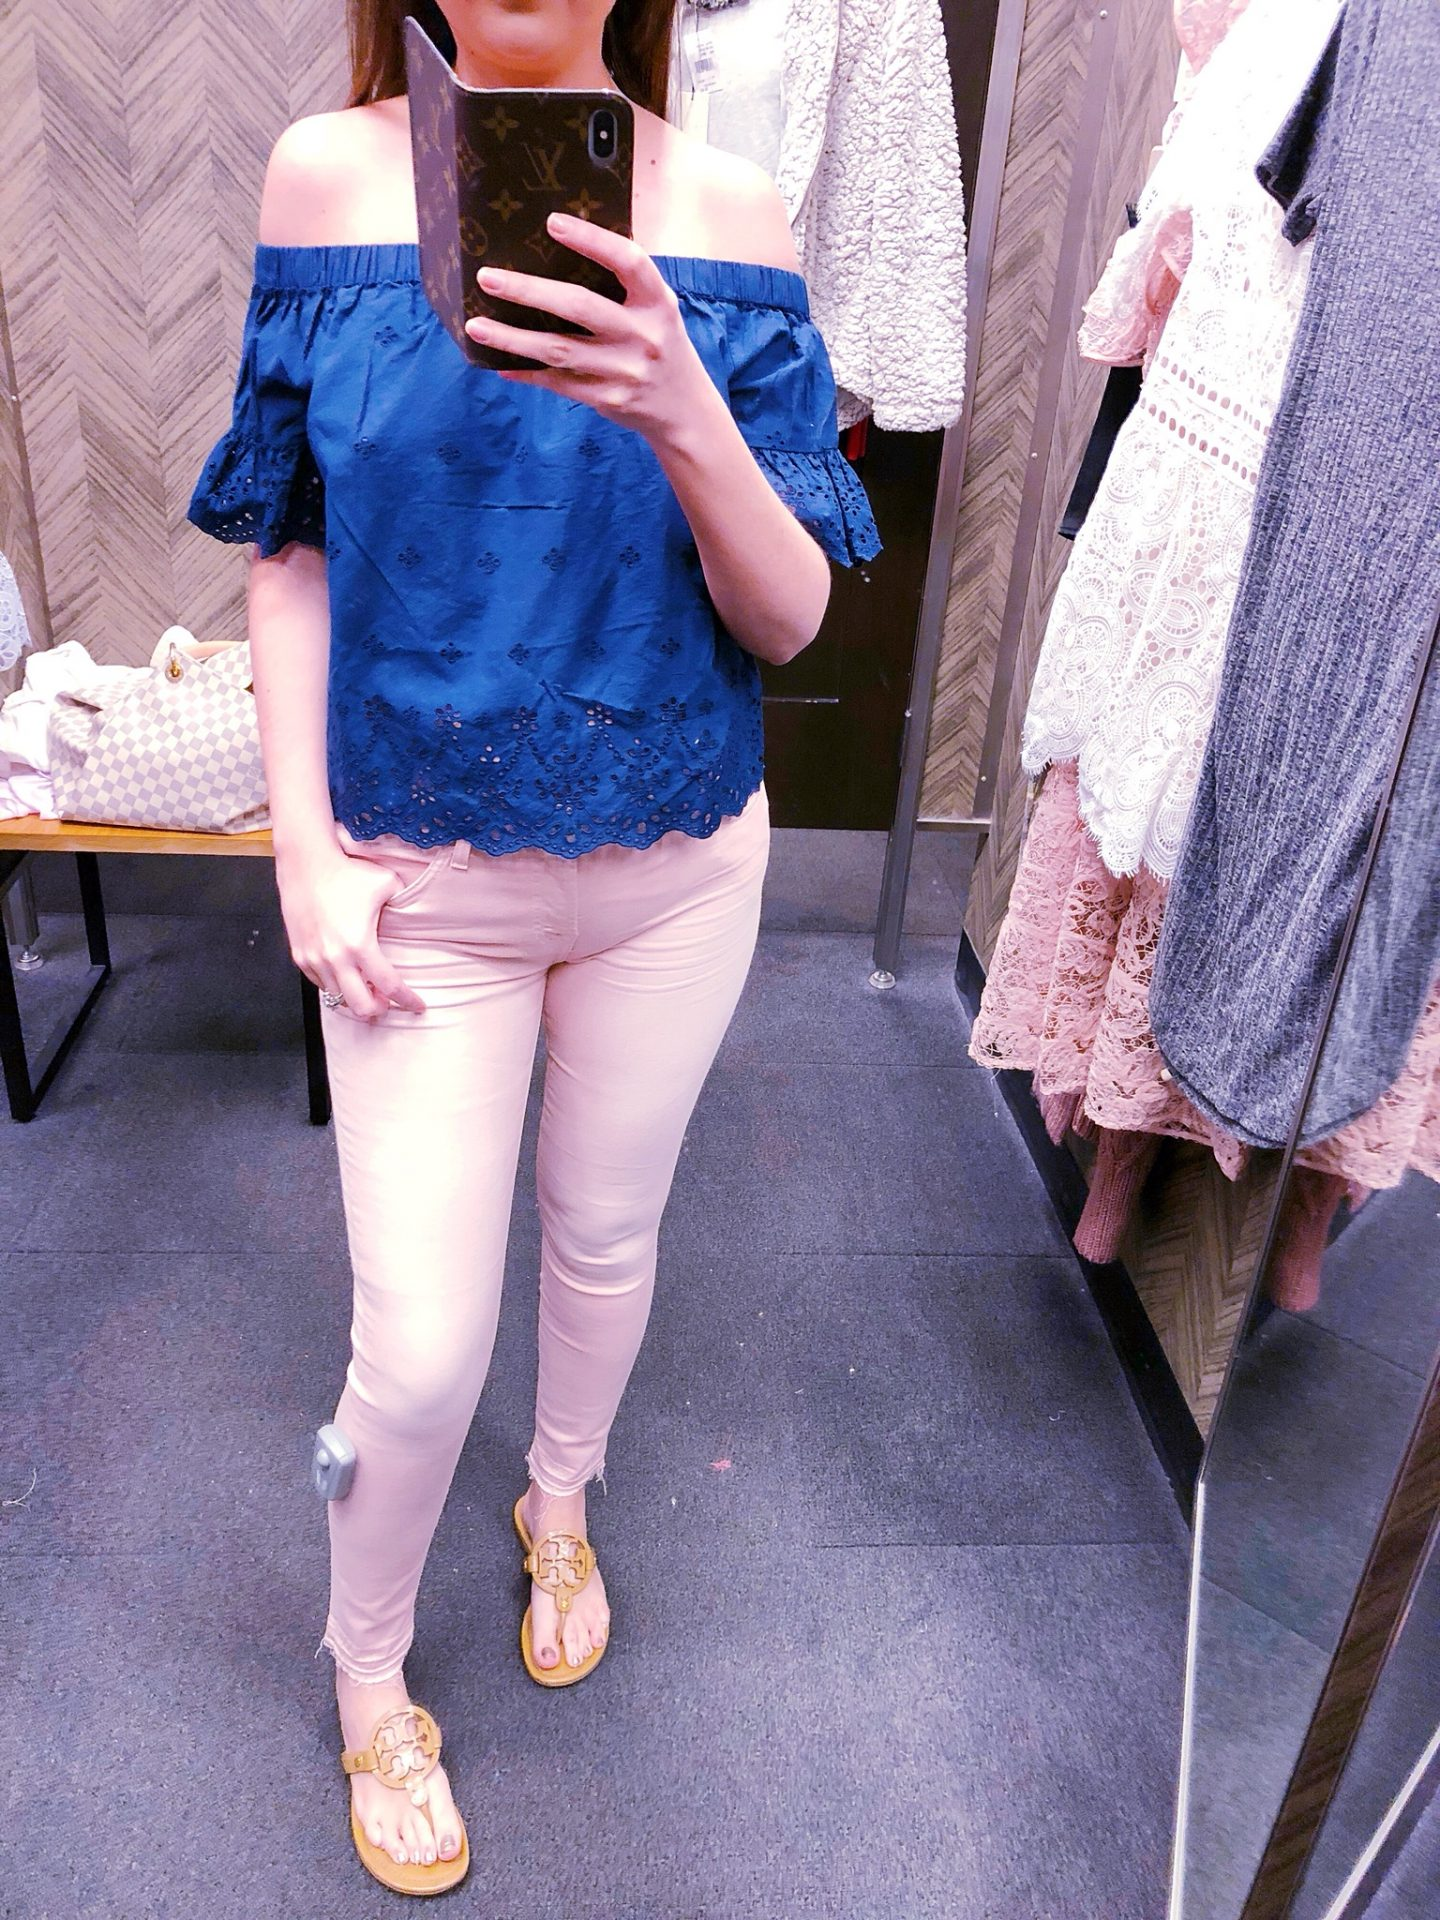 Released Hem Ankle Skinny Jeans 7 FOR ALL MANKIND, pink jeans, 7 for all mankind pink jeans, madewell off the shoulder eyelet blouse, Nordstrom anniversary sale, Nordstrom anniversary sale 2018, Nordstrom anniversary sale haul, Nordstrom anniversary sale dressing room try-on